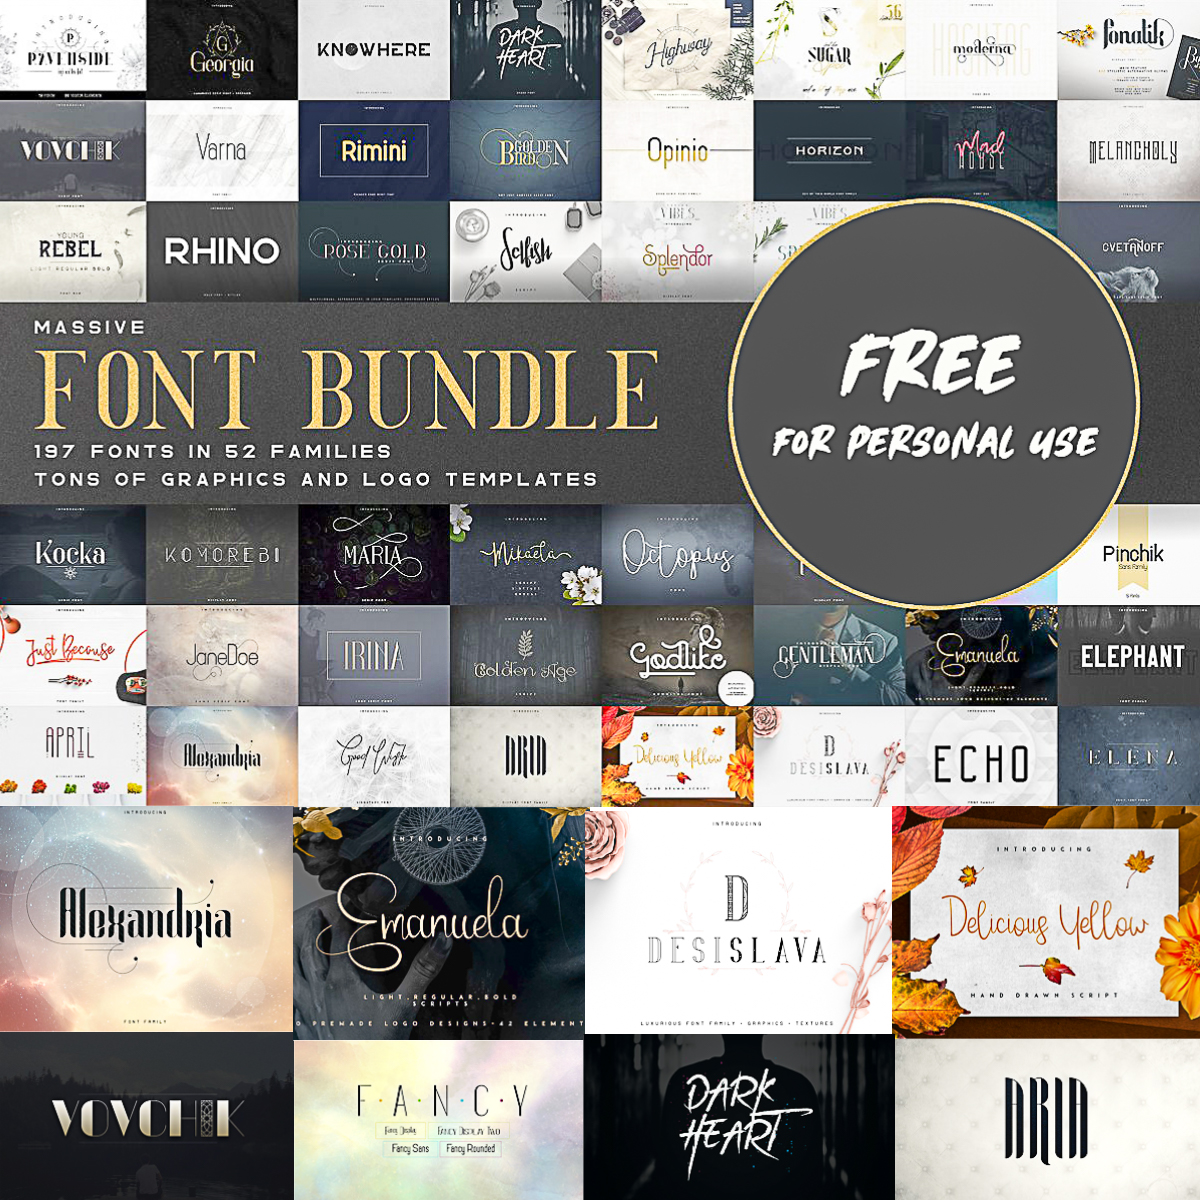 Massive Font Bundle 197 Fonts Free Download